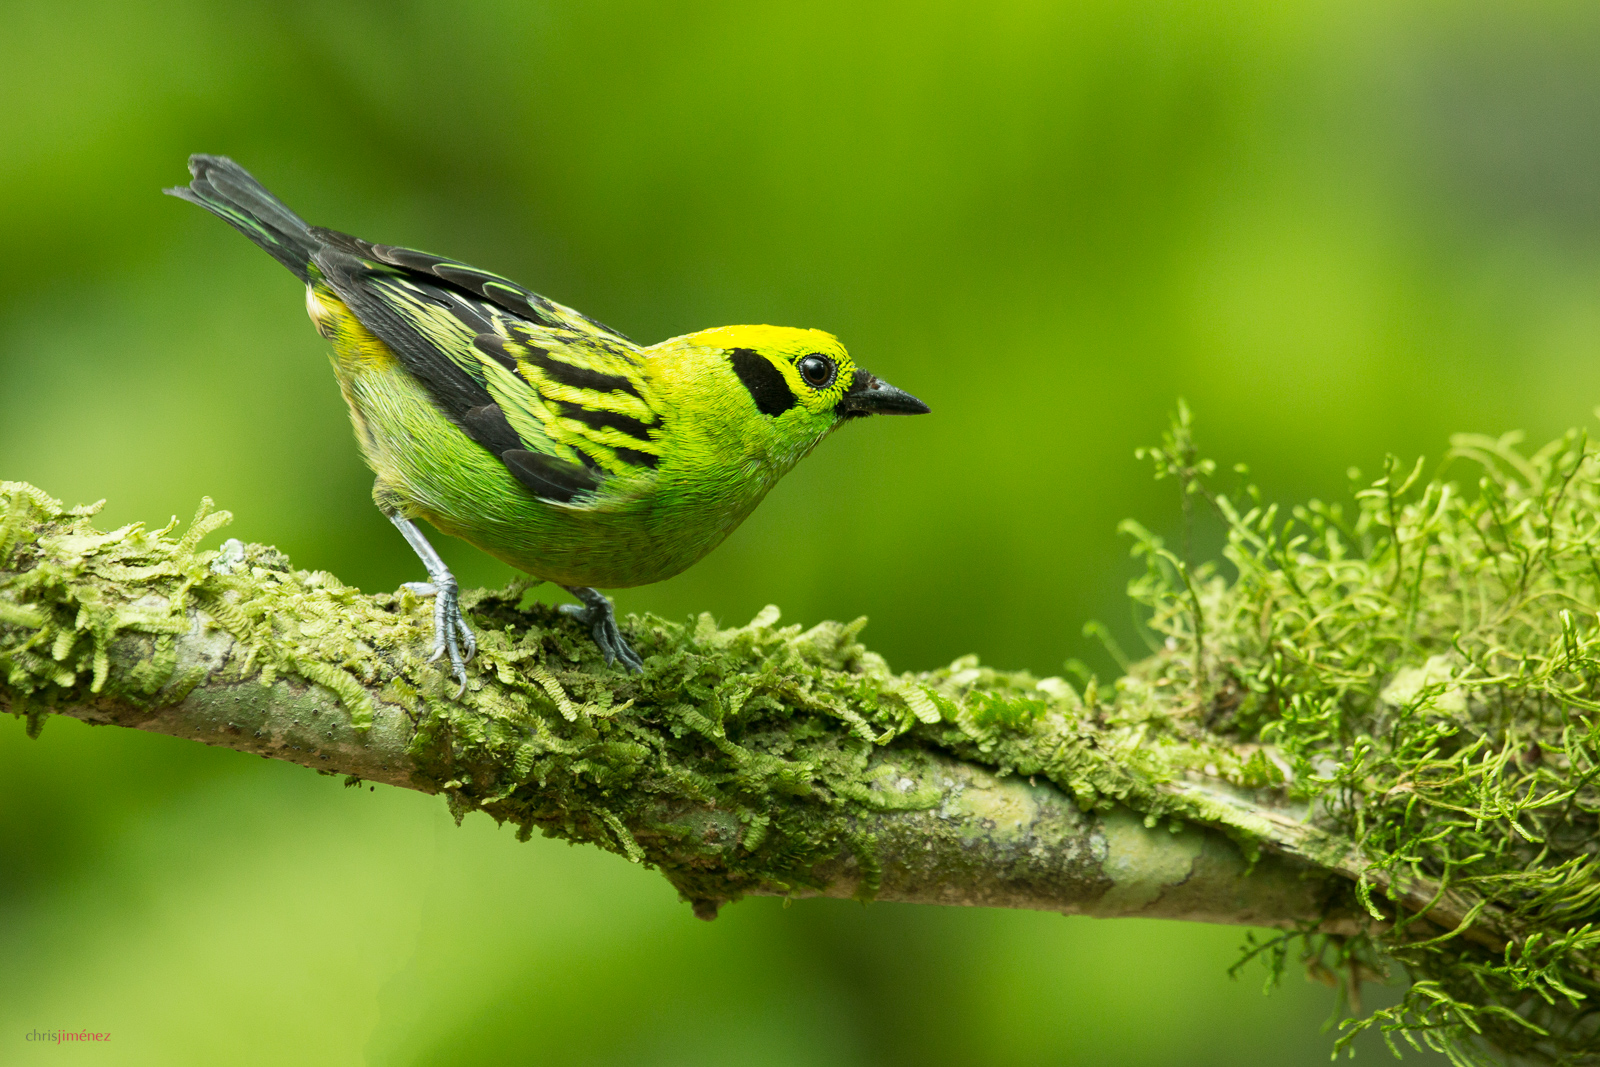 Emerald Tanager (Tangara florida) perched on a branch